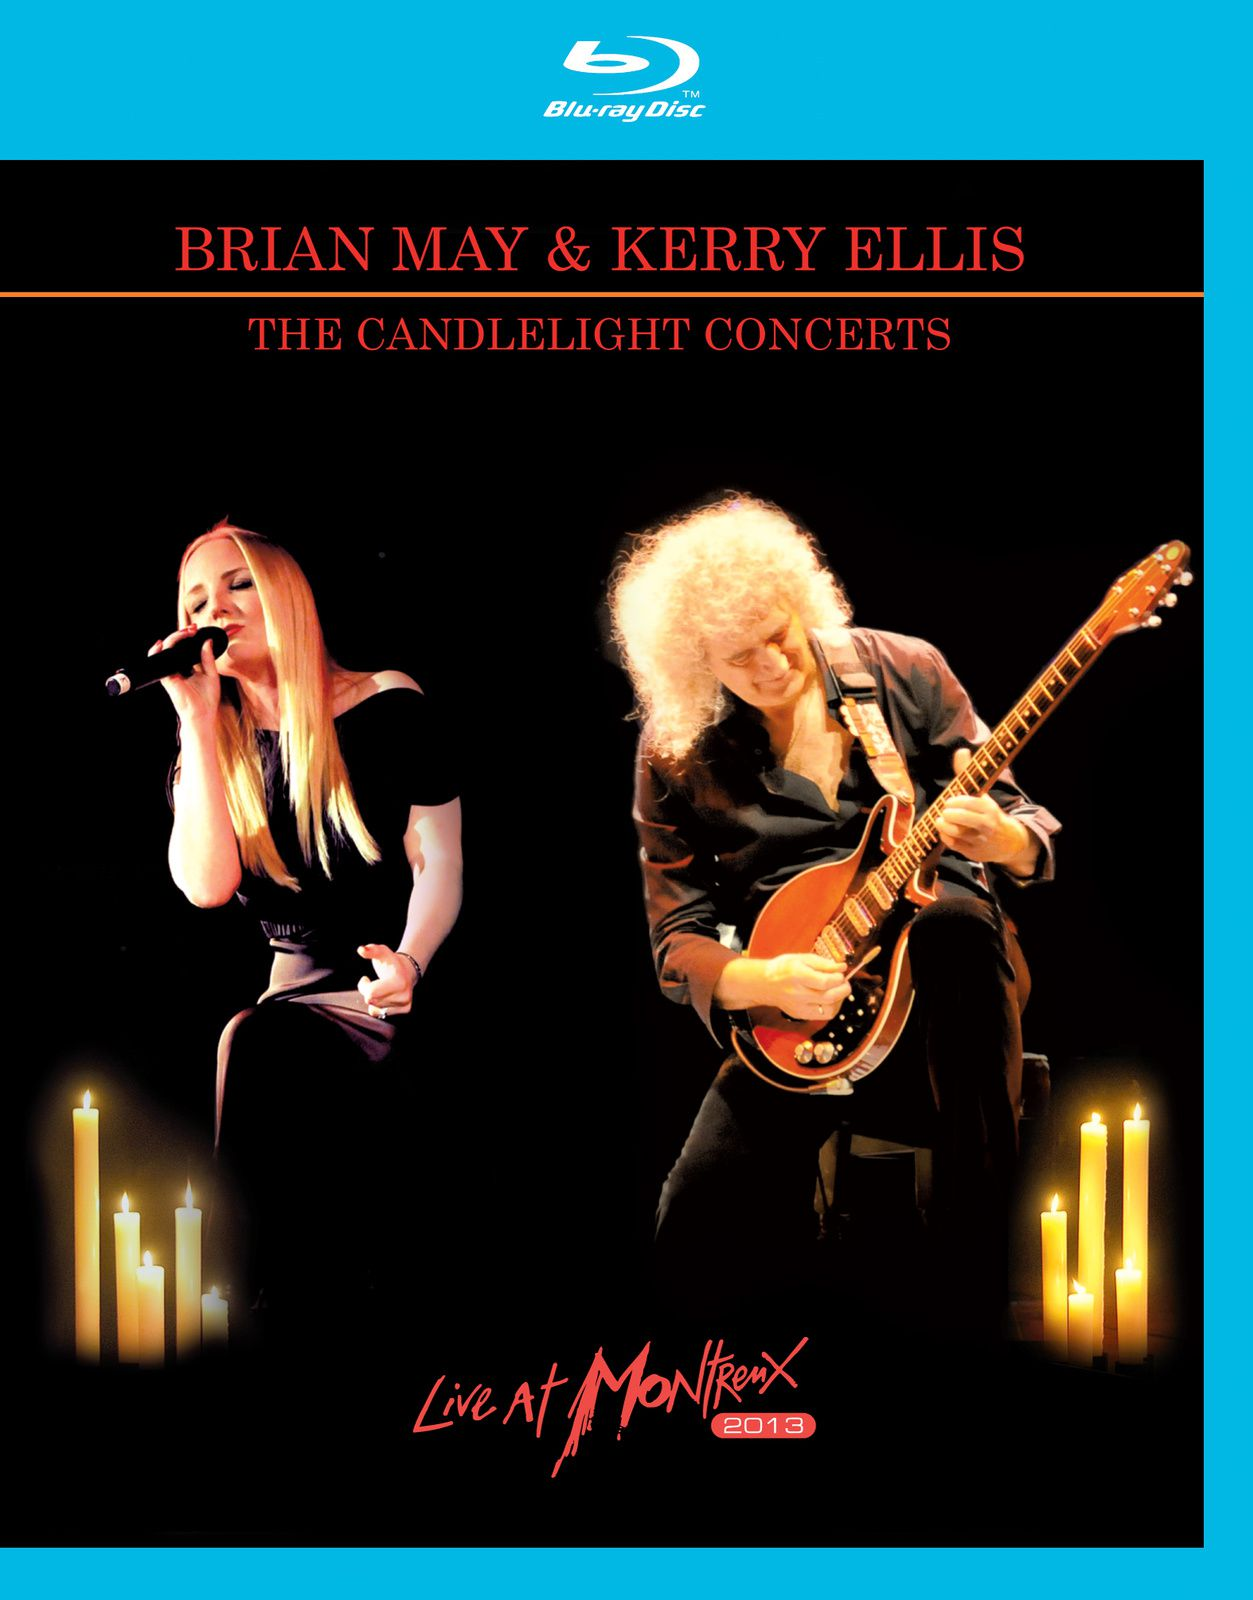 """DVD review BRIAN MAY & KERRY ELLIS """"The candlelight concerts - live at Montreux 2013"""""""